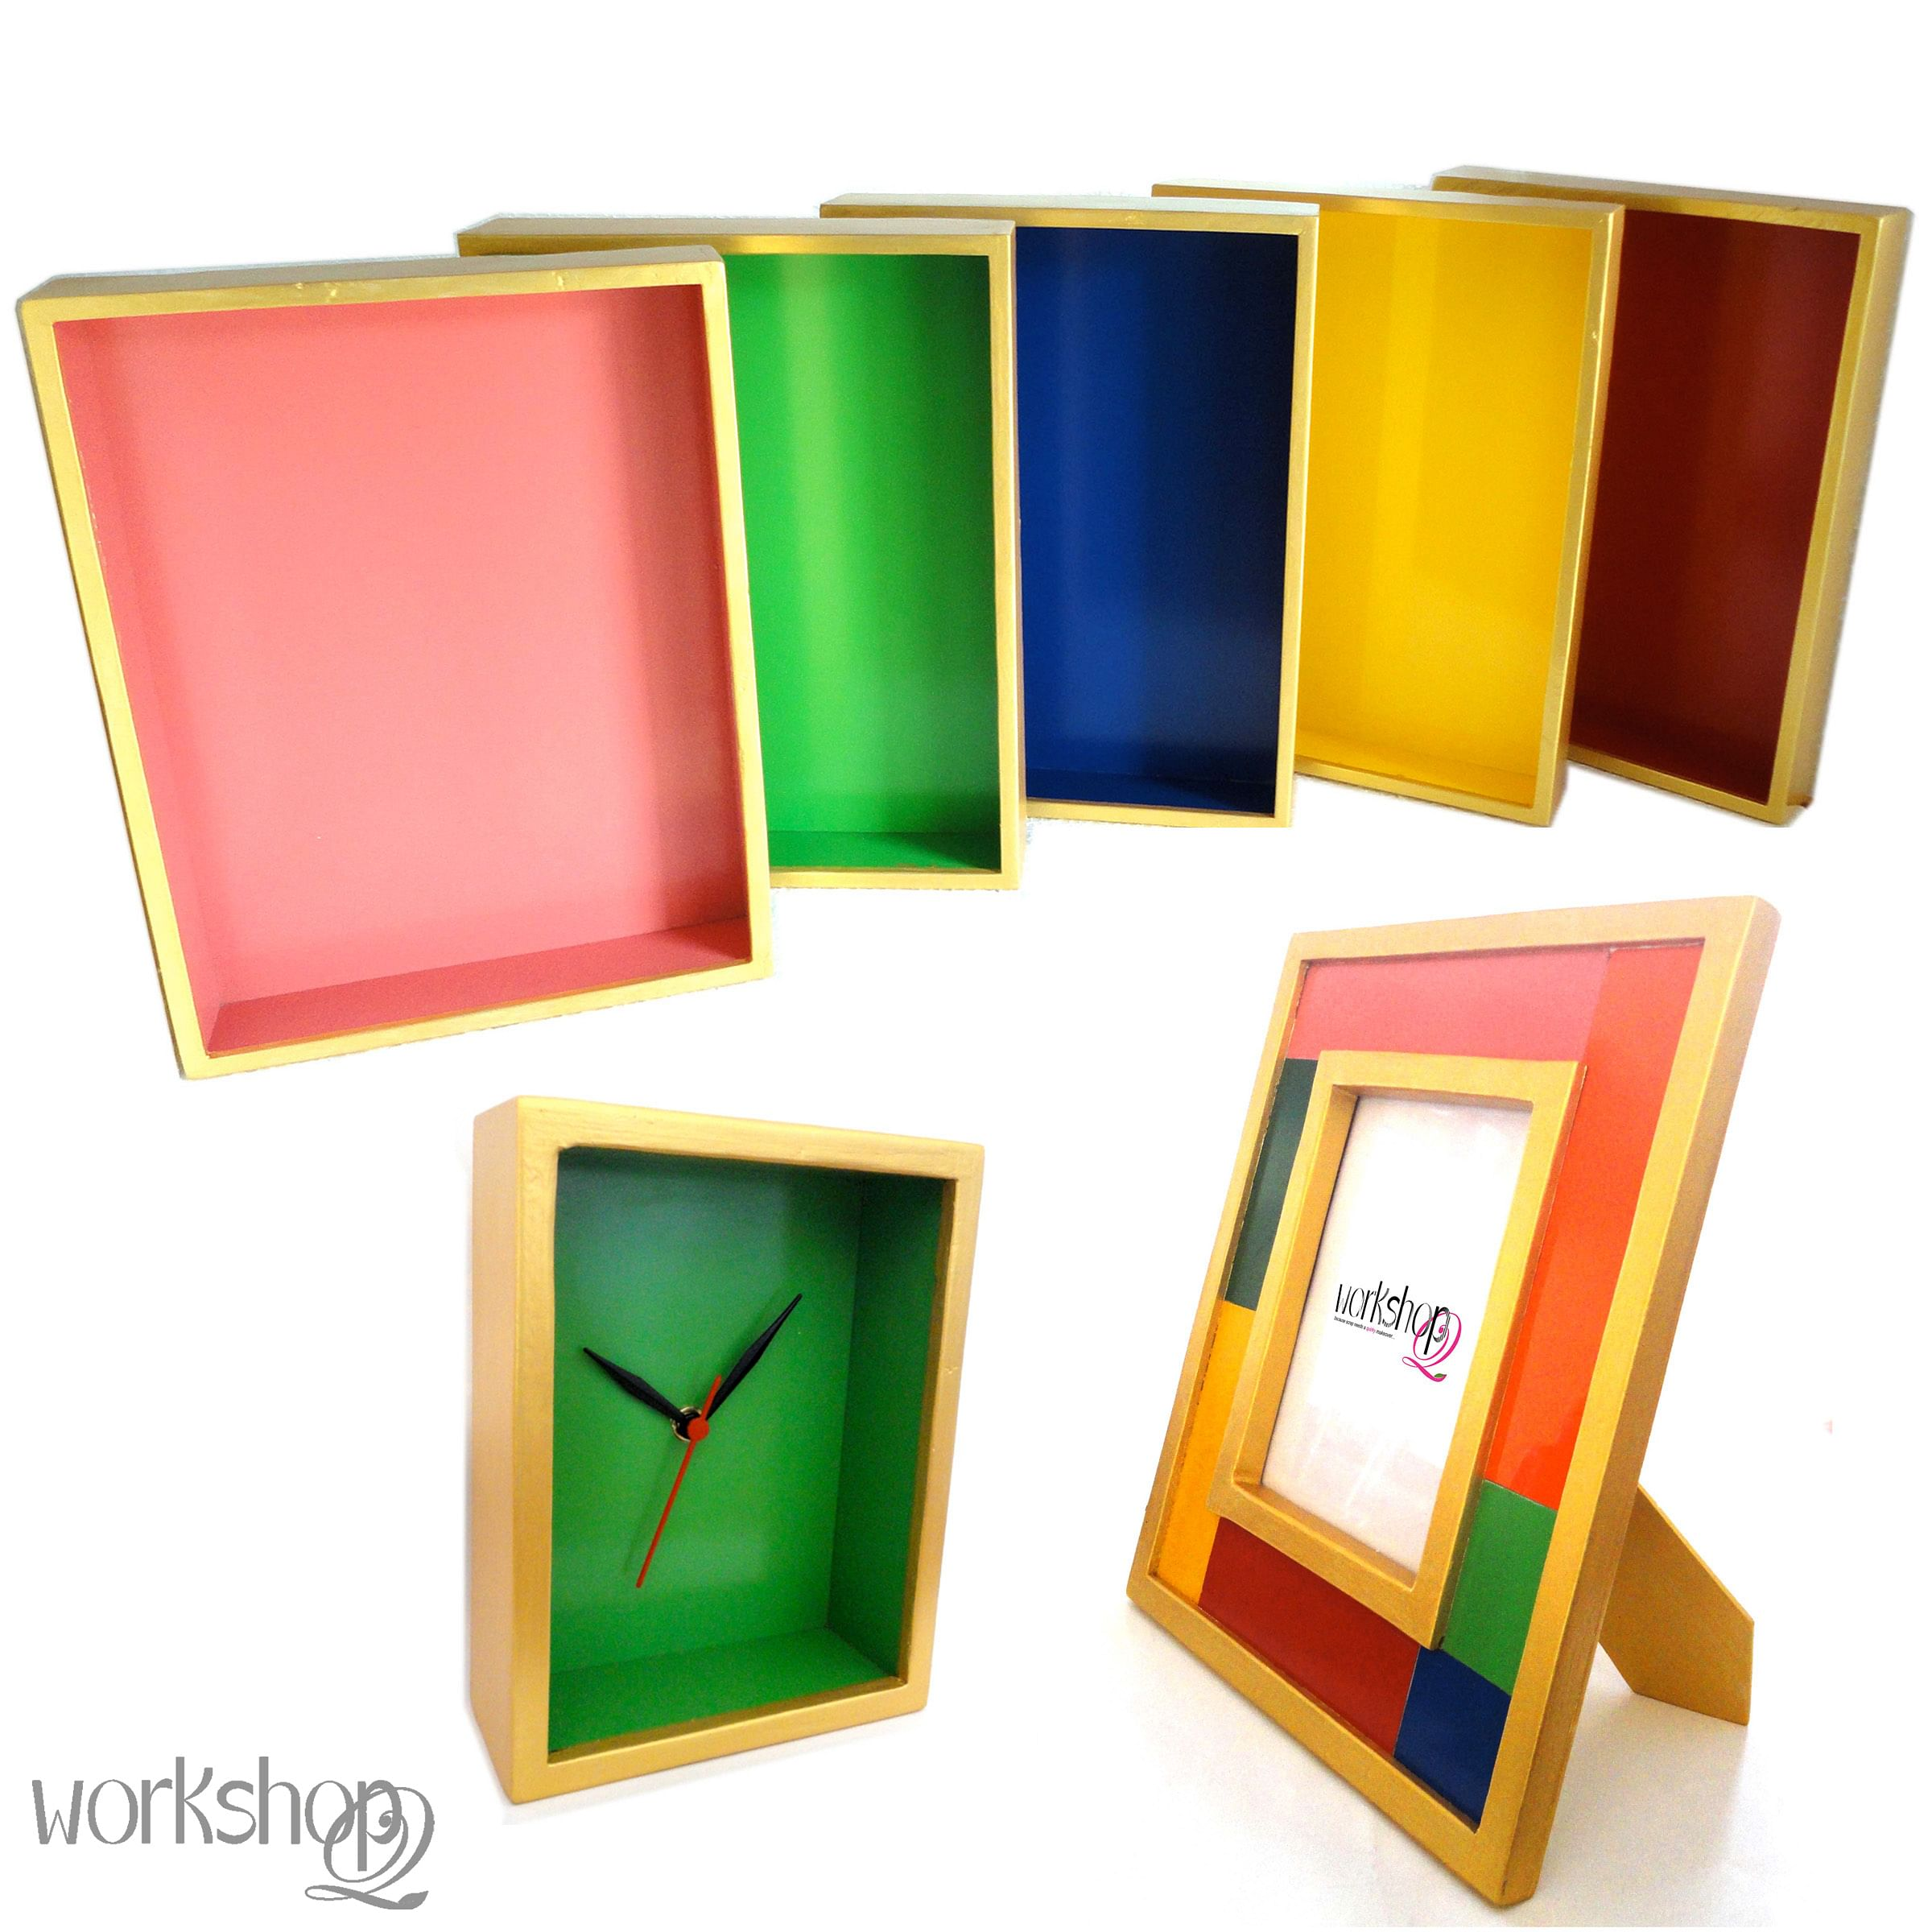 Colour-blocked Aluminium range of trays, clocks and photo frames